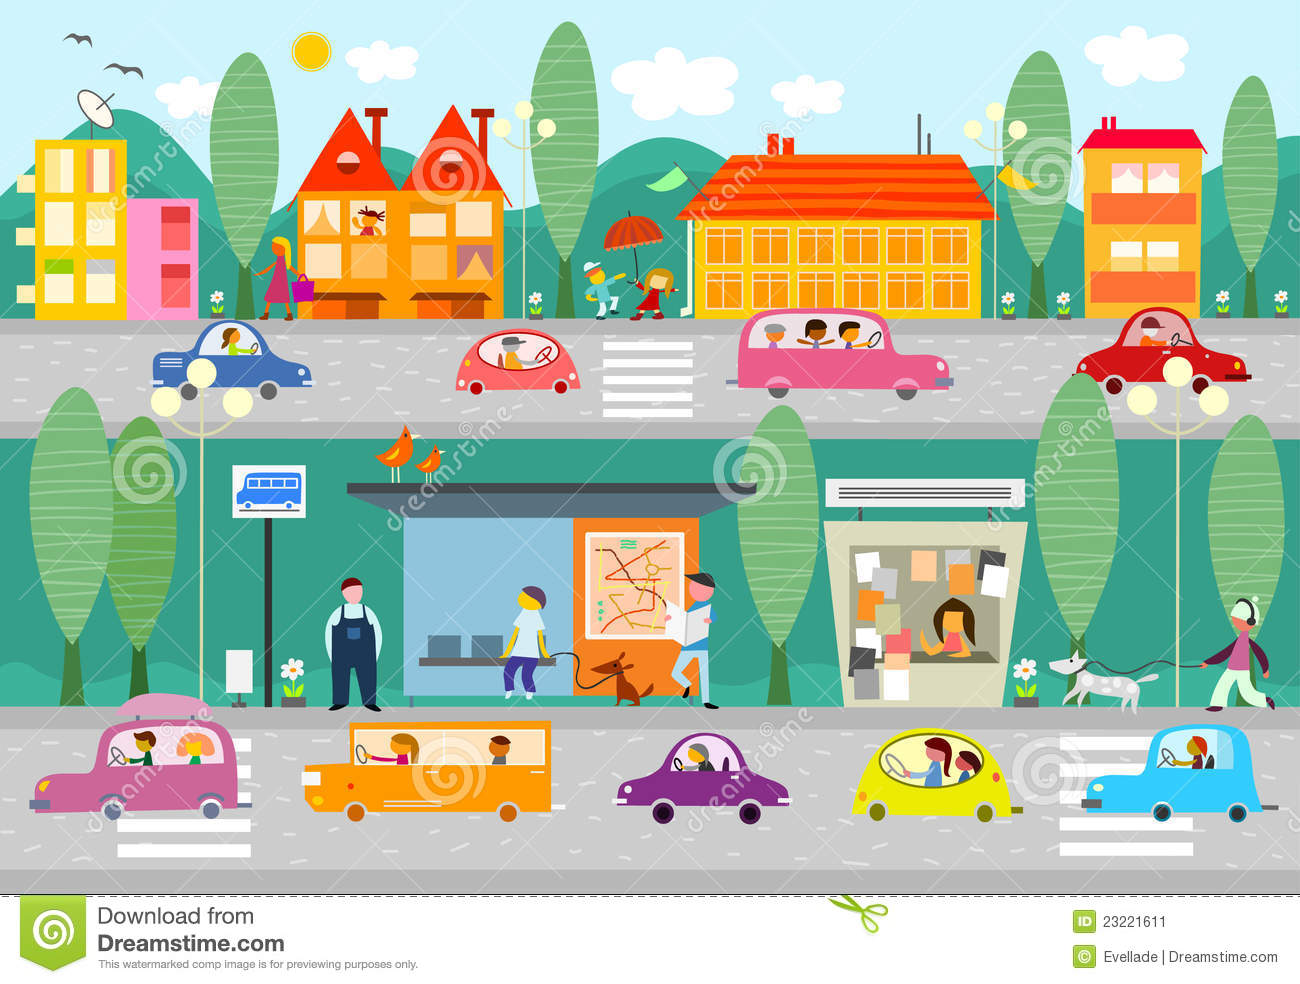 Illustration Of A Day Scene In A City With Bus Stop Cars People And